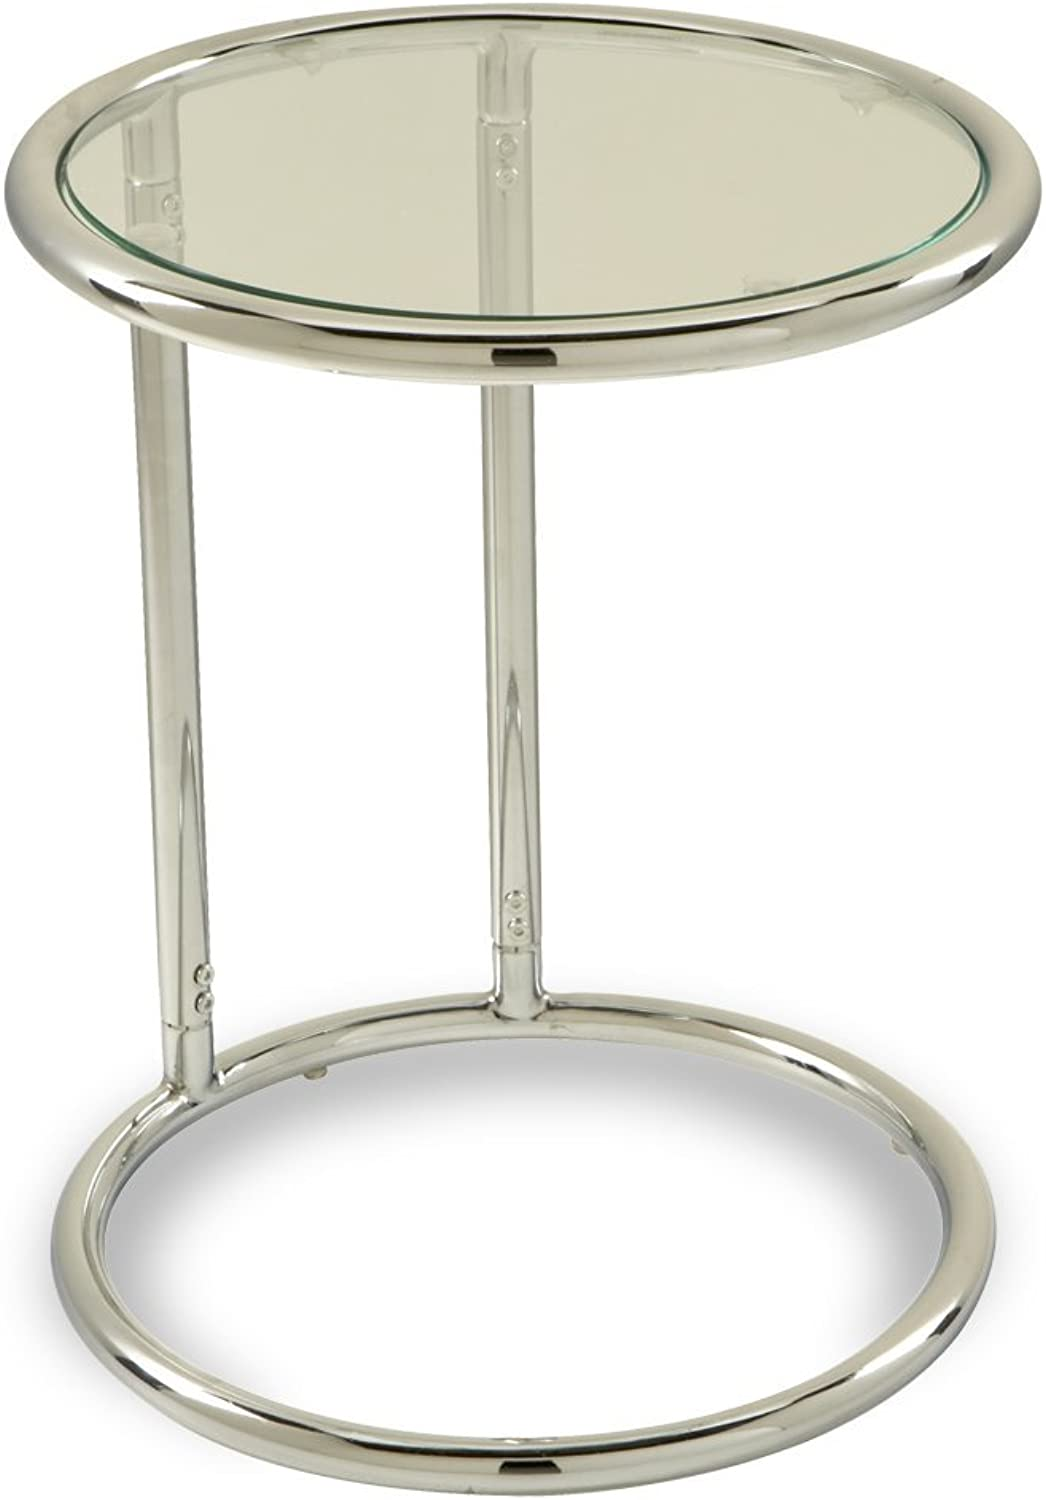 Avesix AVE SIX Yield Modern Round Table with Chromed Steel Base, Clear Glass Top